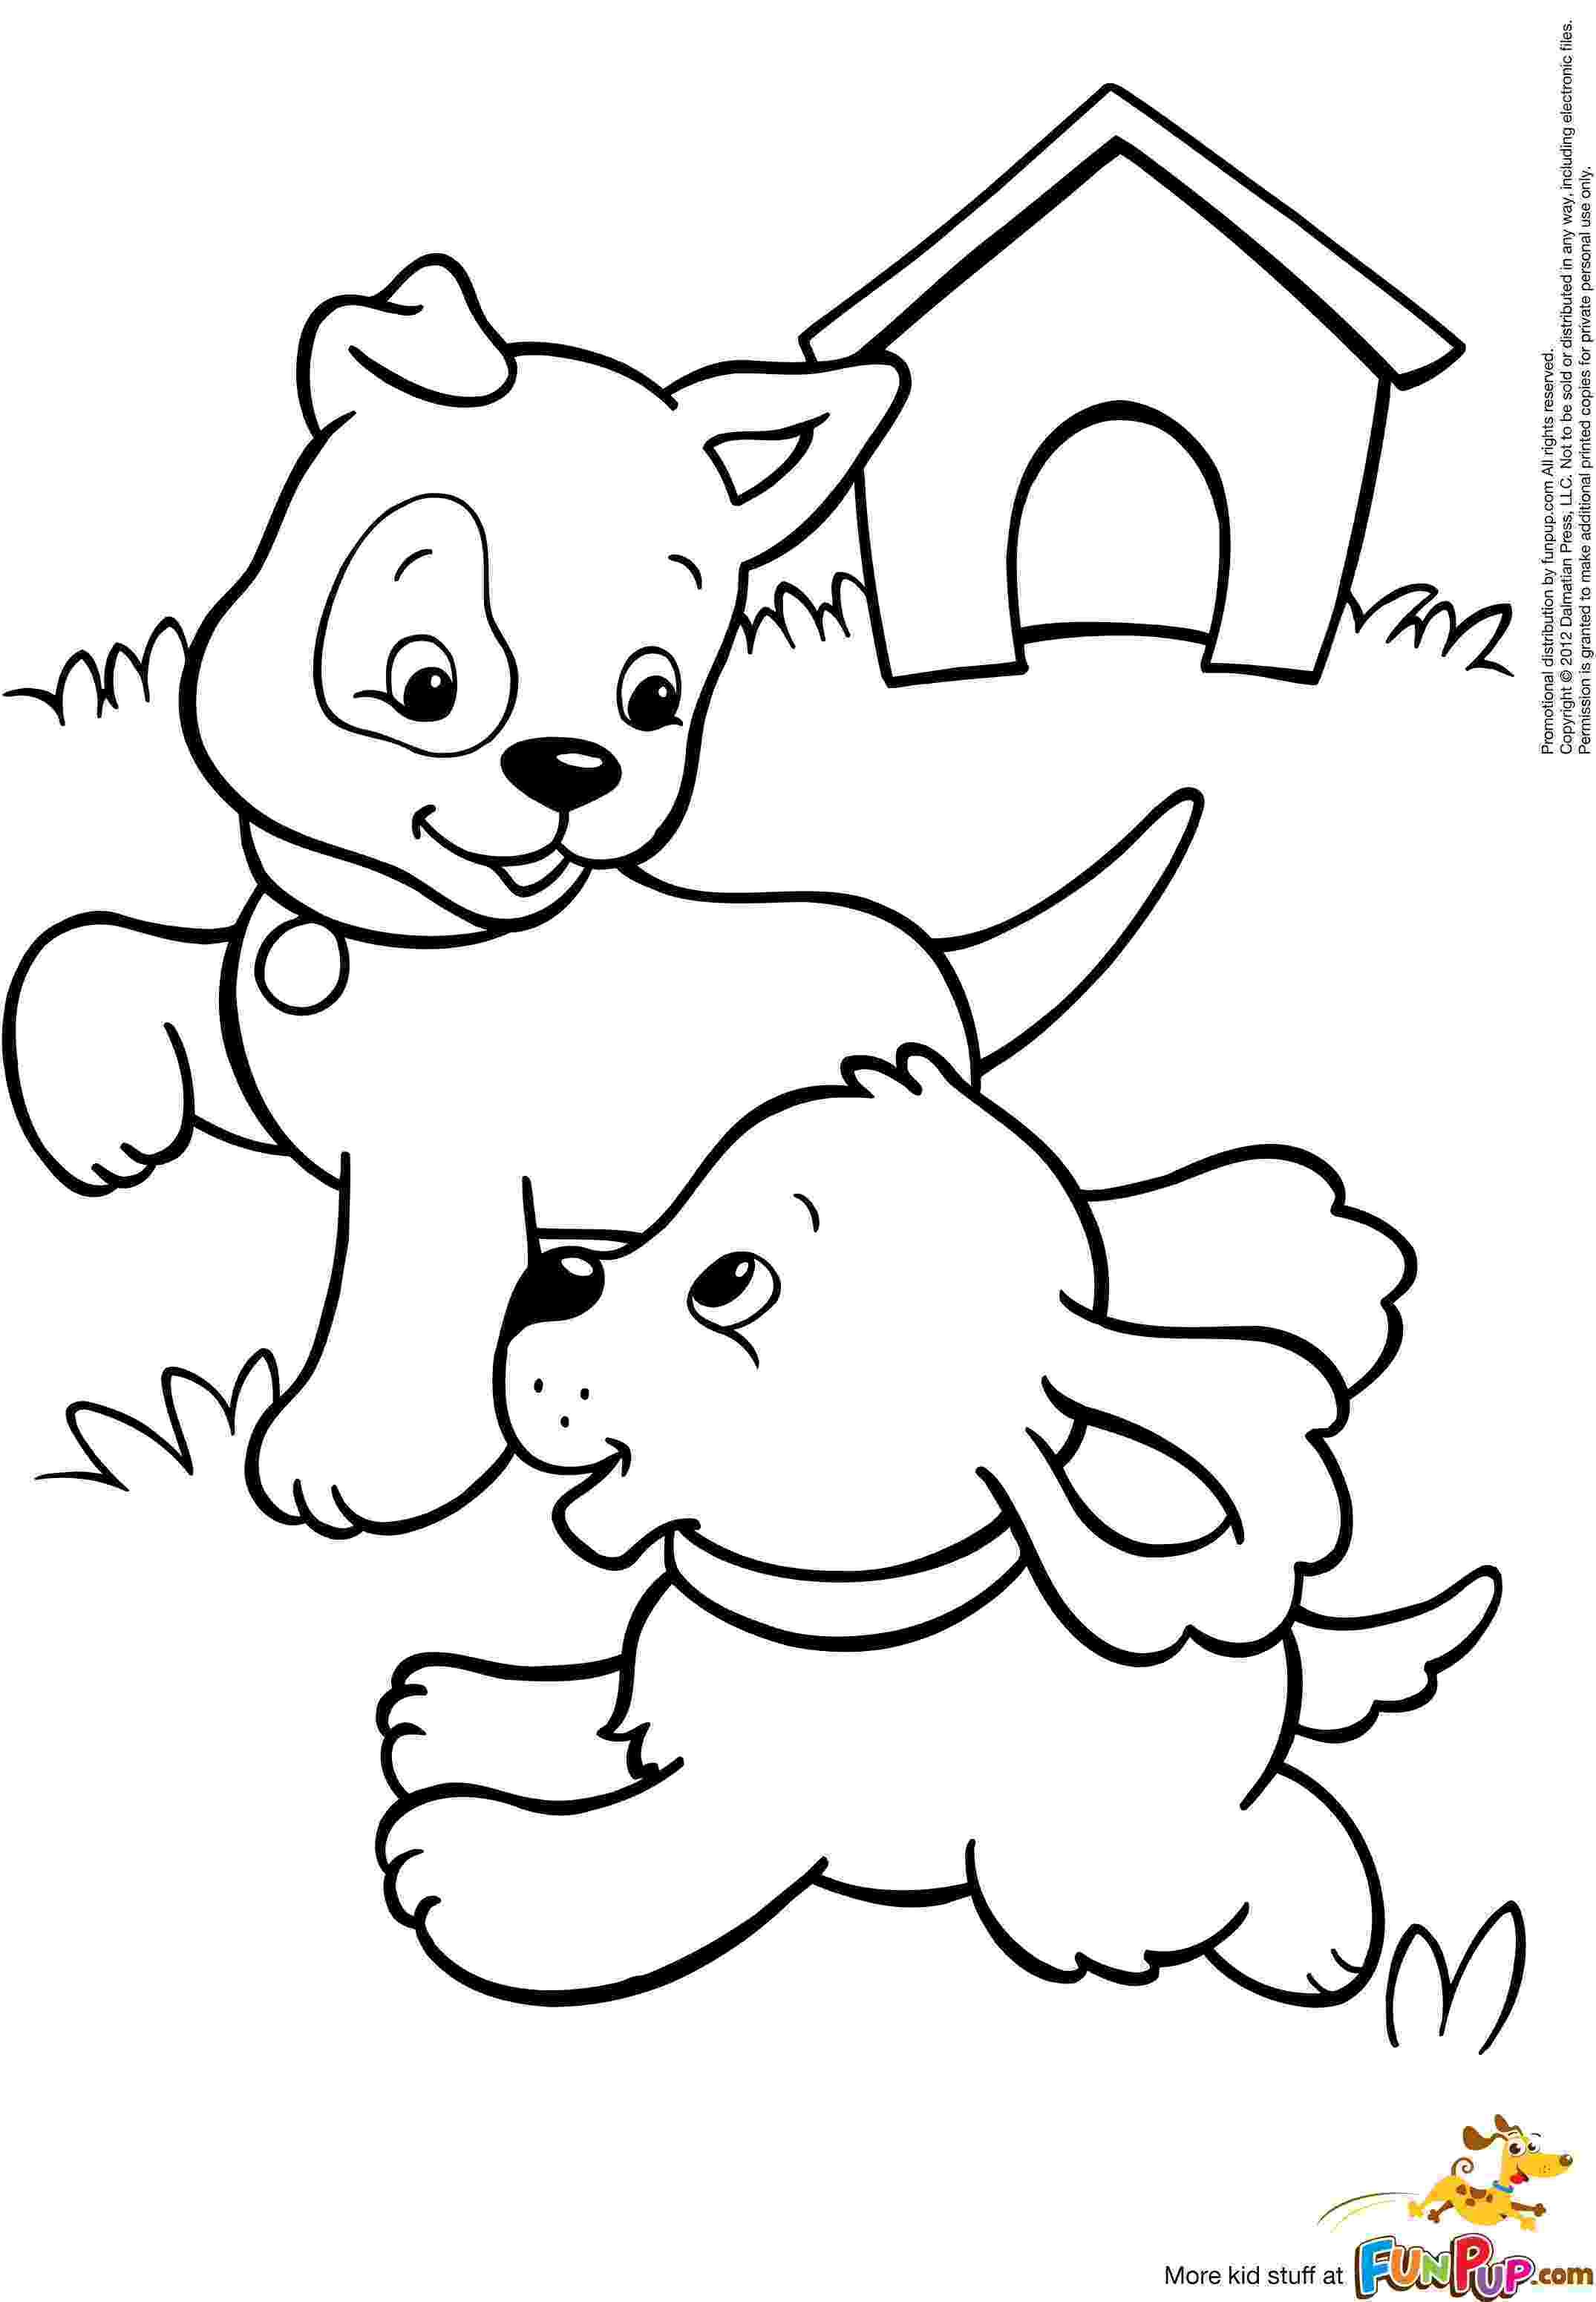 realistic coloring realistic unicorn coloring pages download and print for free realistic coloring 1 2